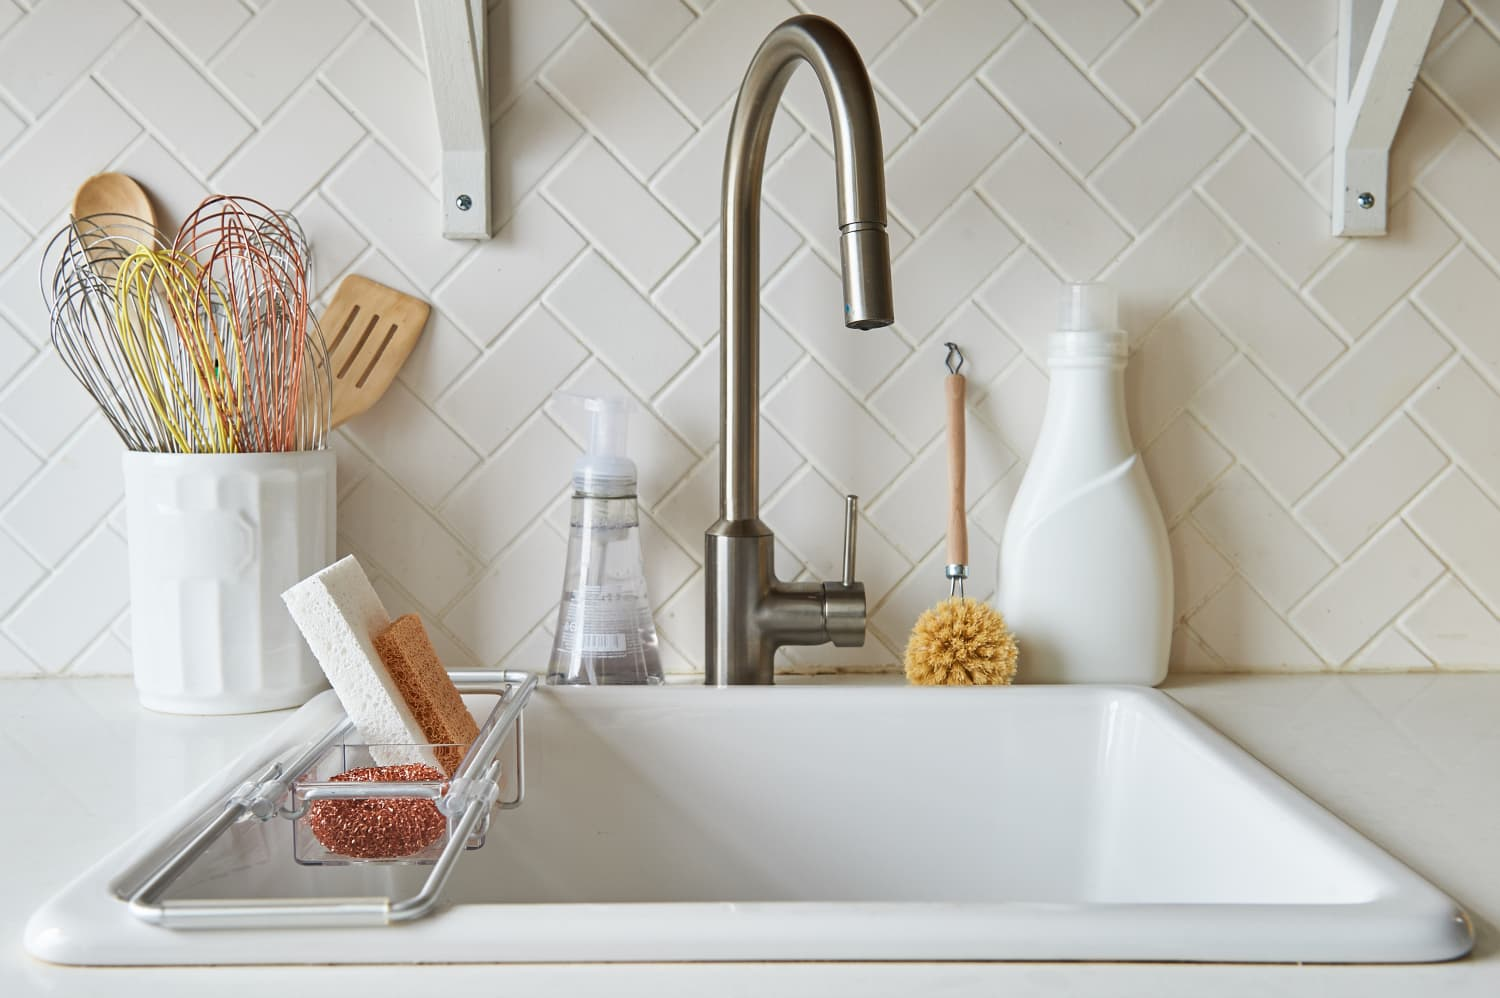 Do You Really Need Dish Soap and Hand Soap in the Kitchen?